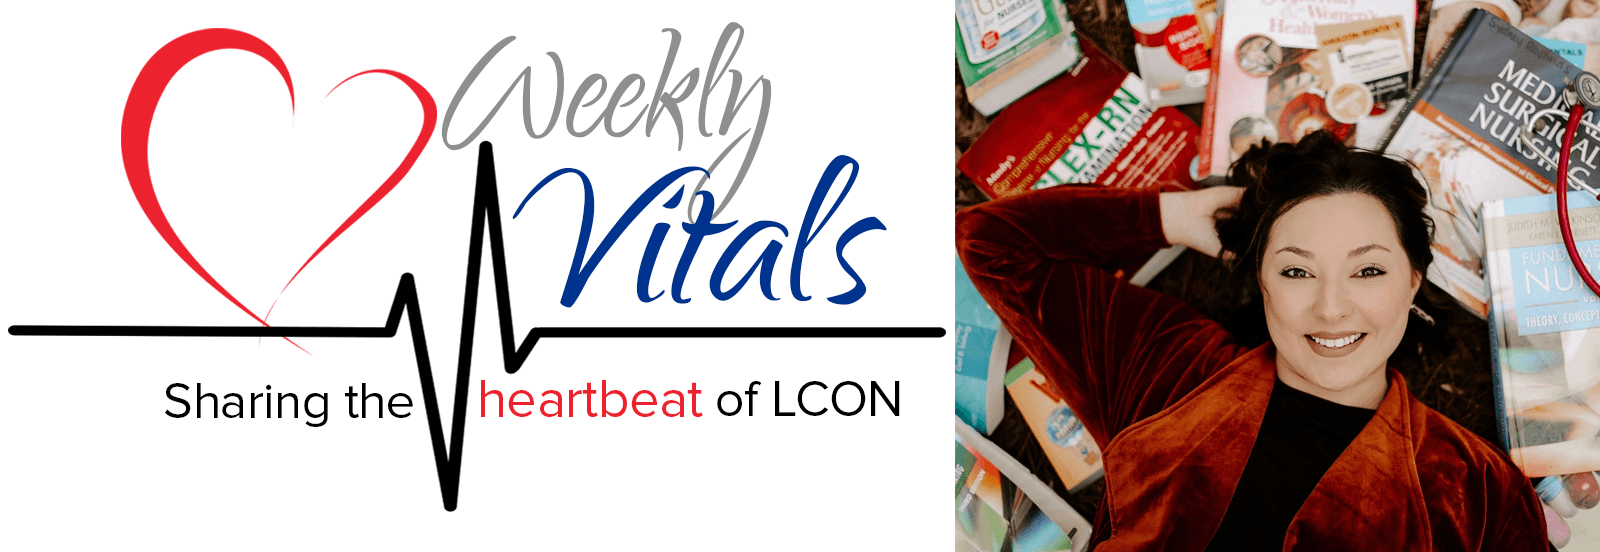 Weekly Vitals graphic